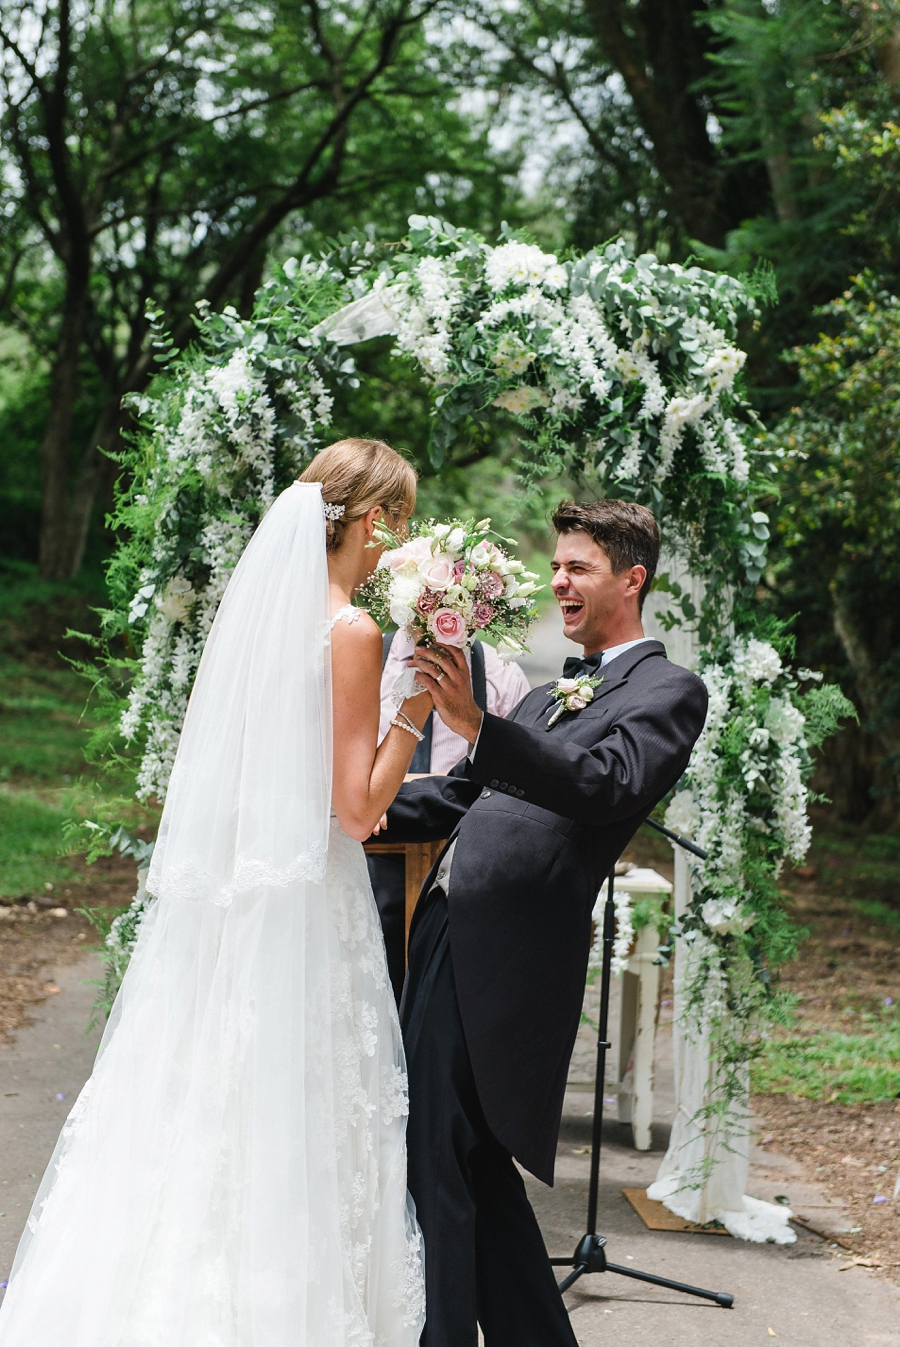 Kate Martens Photography - Keyser Wedding_0040